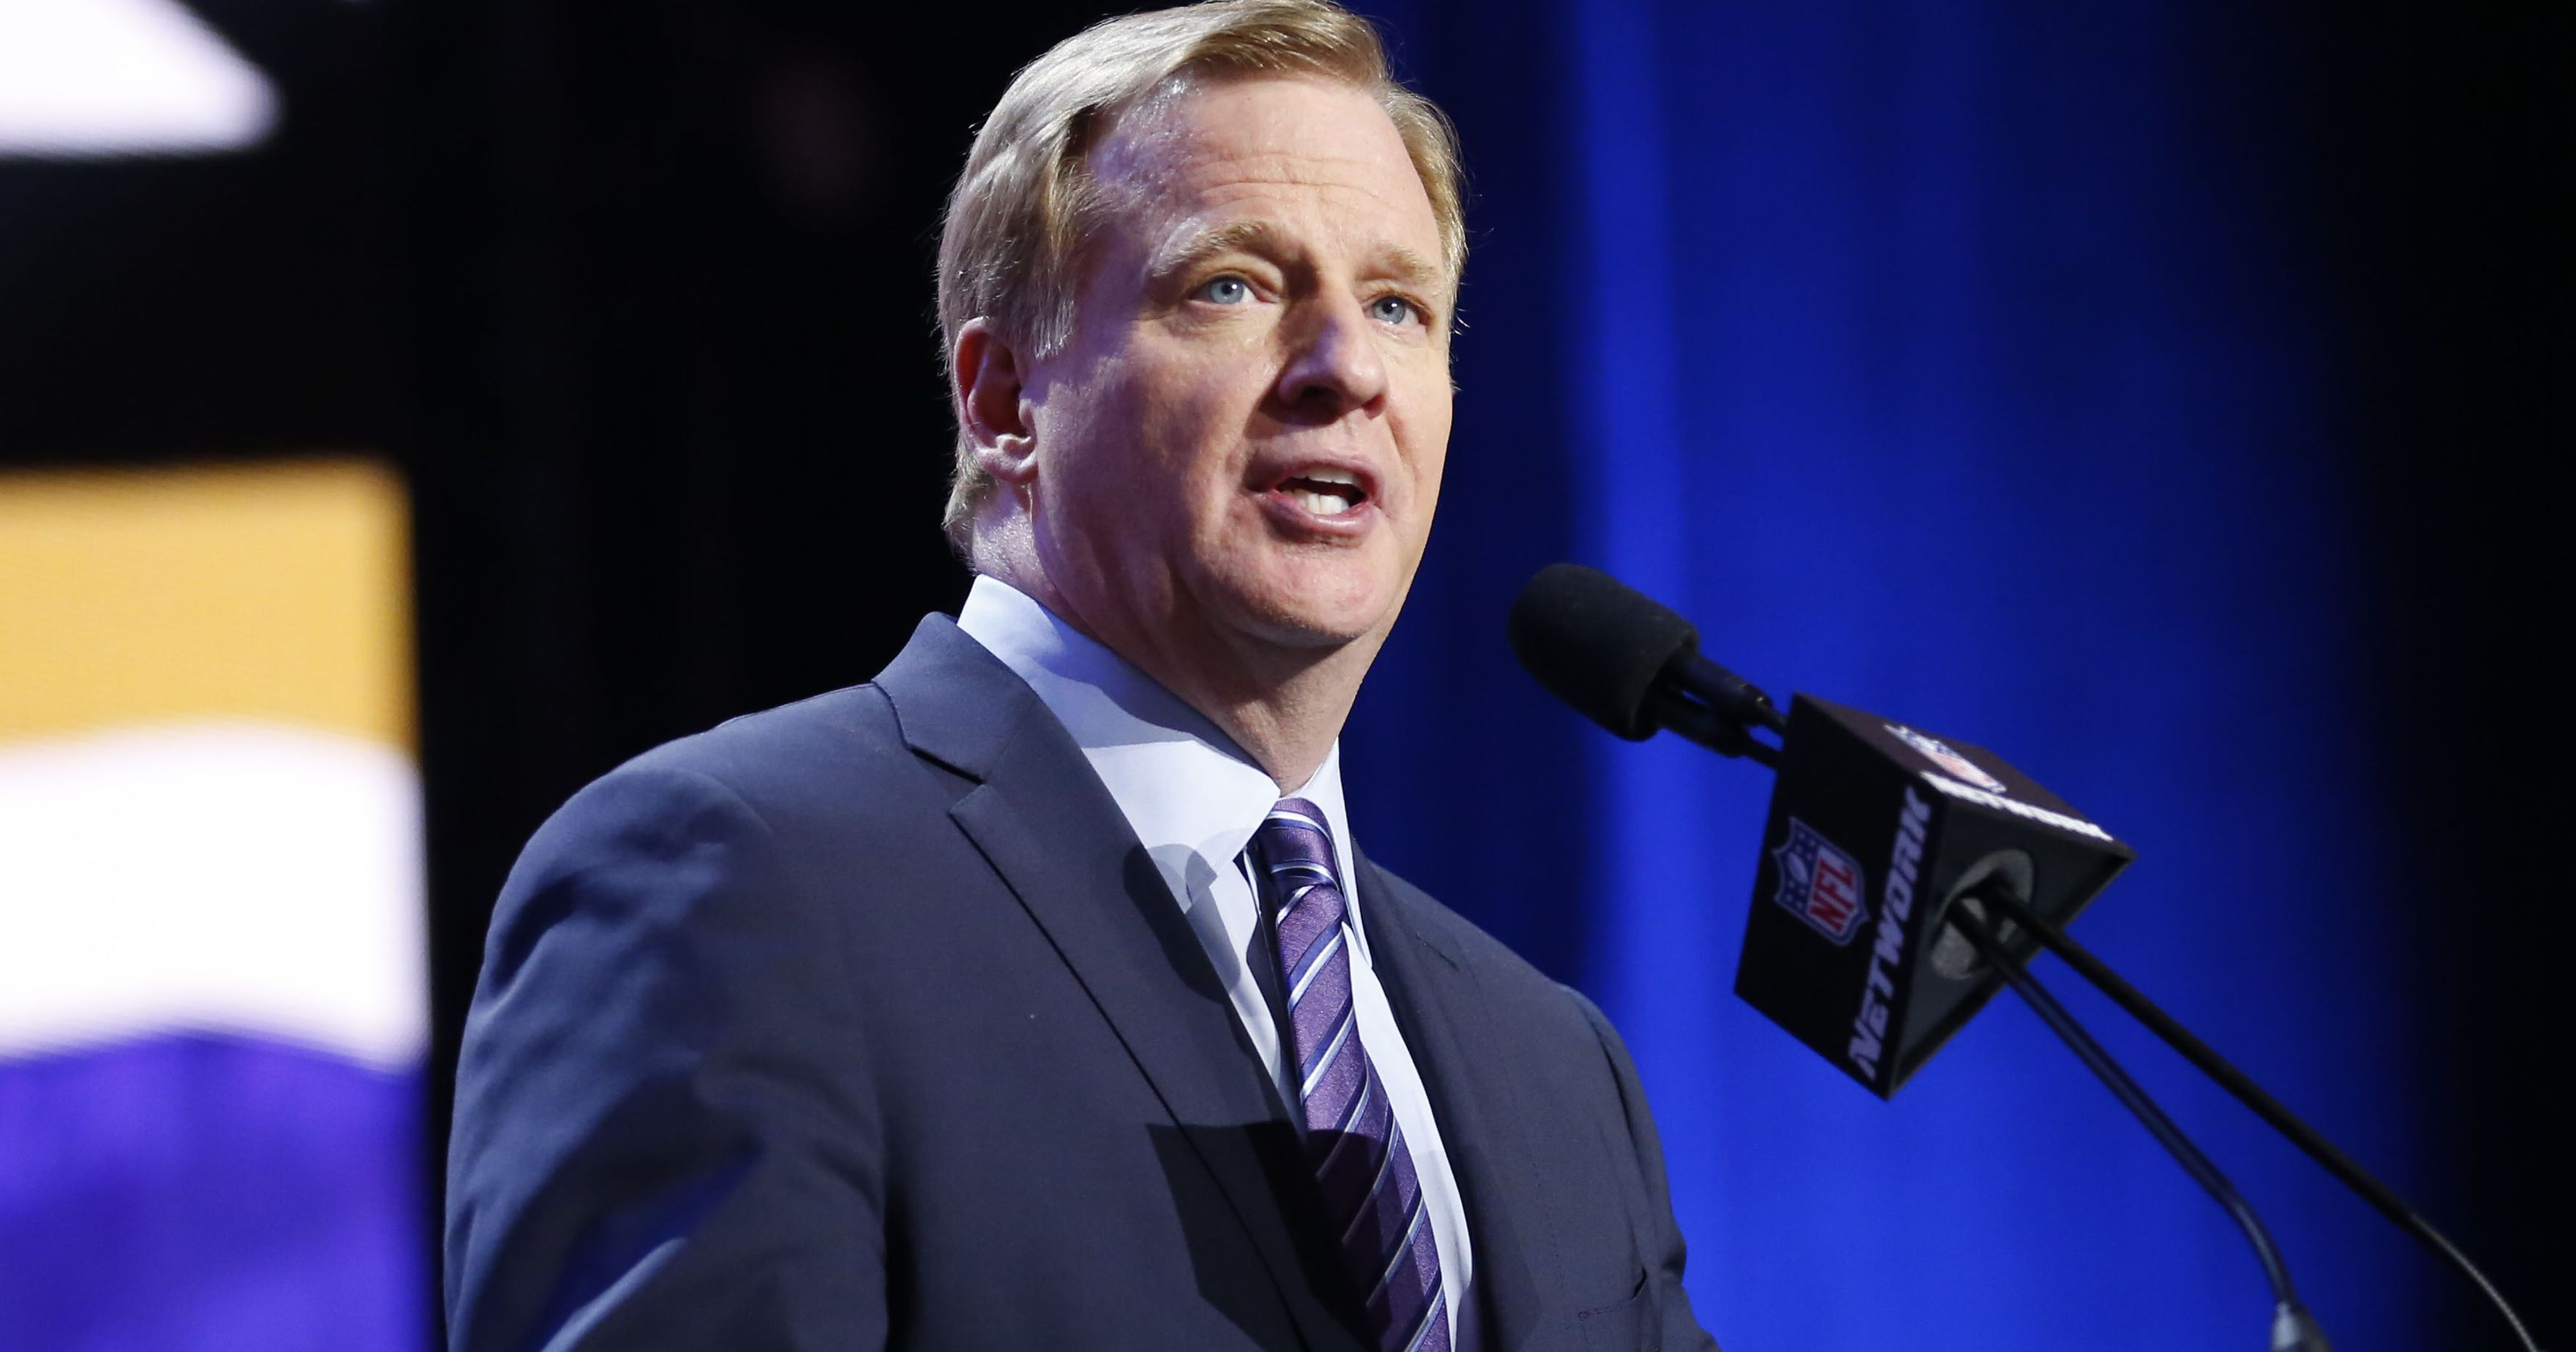 Roger Goodell's 10th anniversary: Could we see players strike?